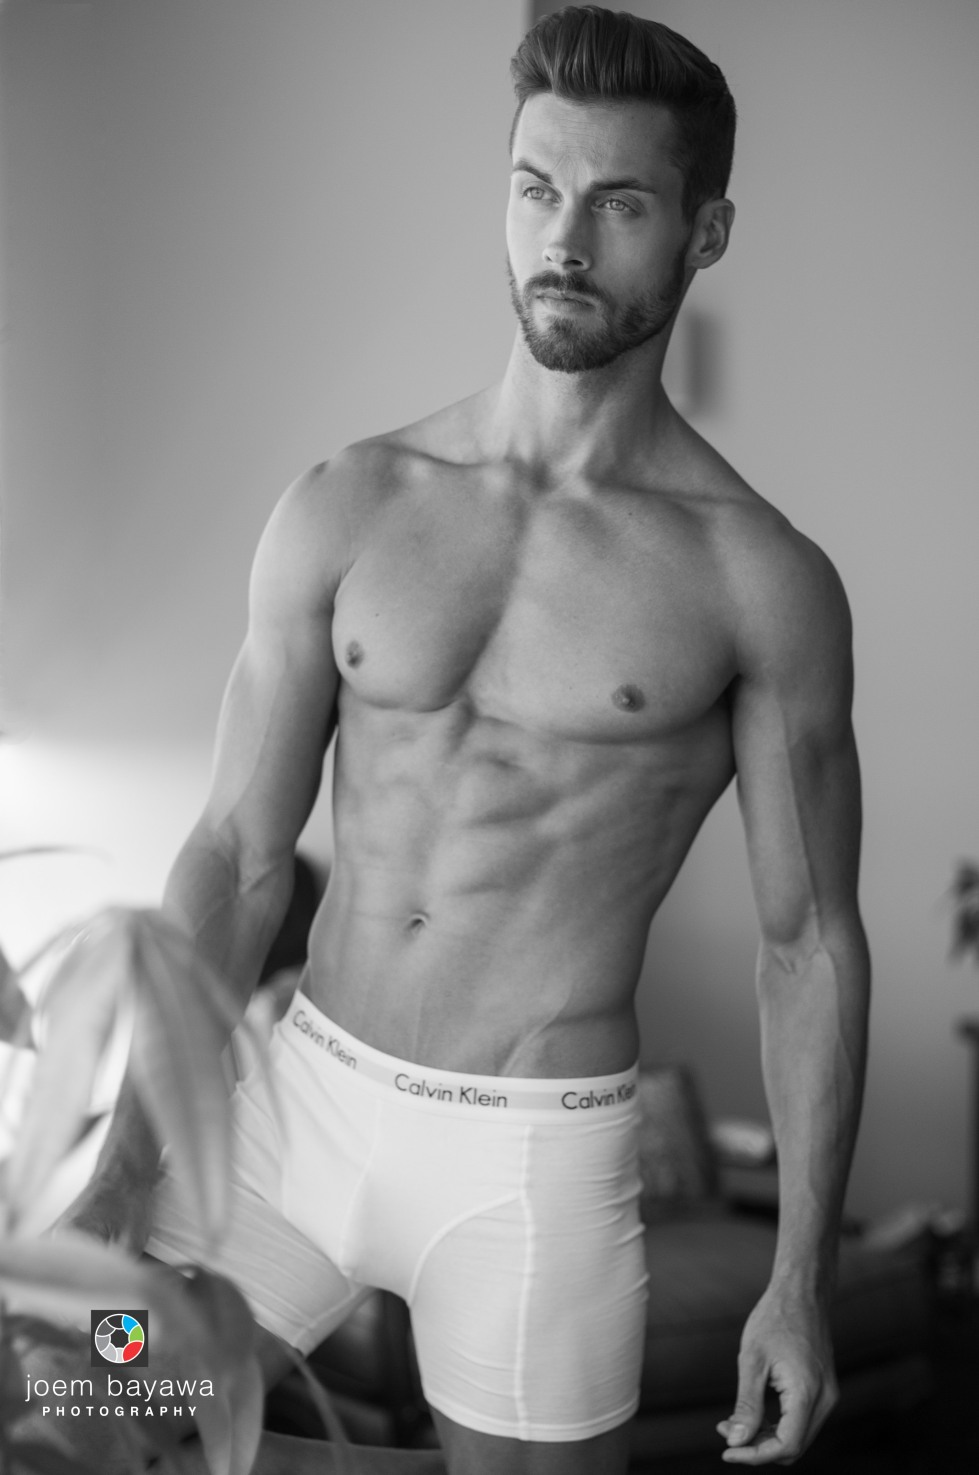 Chicago based photographer Joem Bayawa presents our latest exclusive with a stunning male model Scott Mutschel, he is currently represented by FORD/ Robert Black Agency in Scottsdale, Arizona and also at Wilhelmina Denver in Colorado. They did the shot in Chicago, when they met for the very first time to make this happened, and voilà! the result was a beautiful, sexy and intimate portrait.